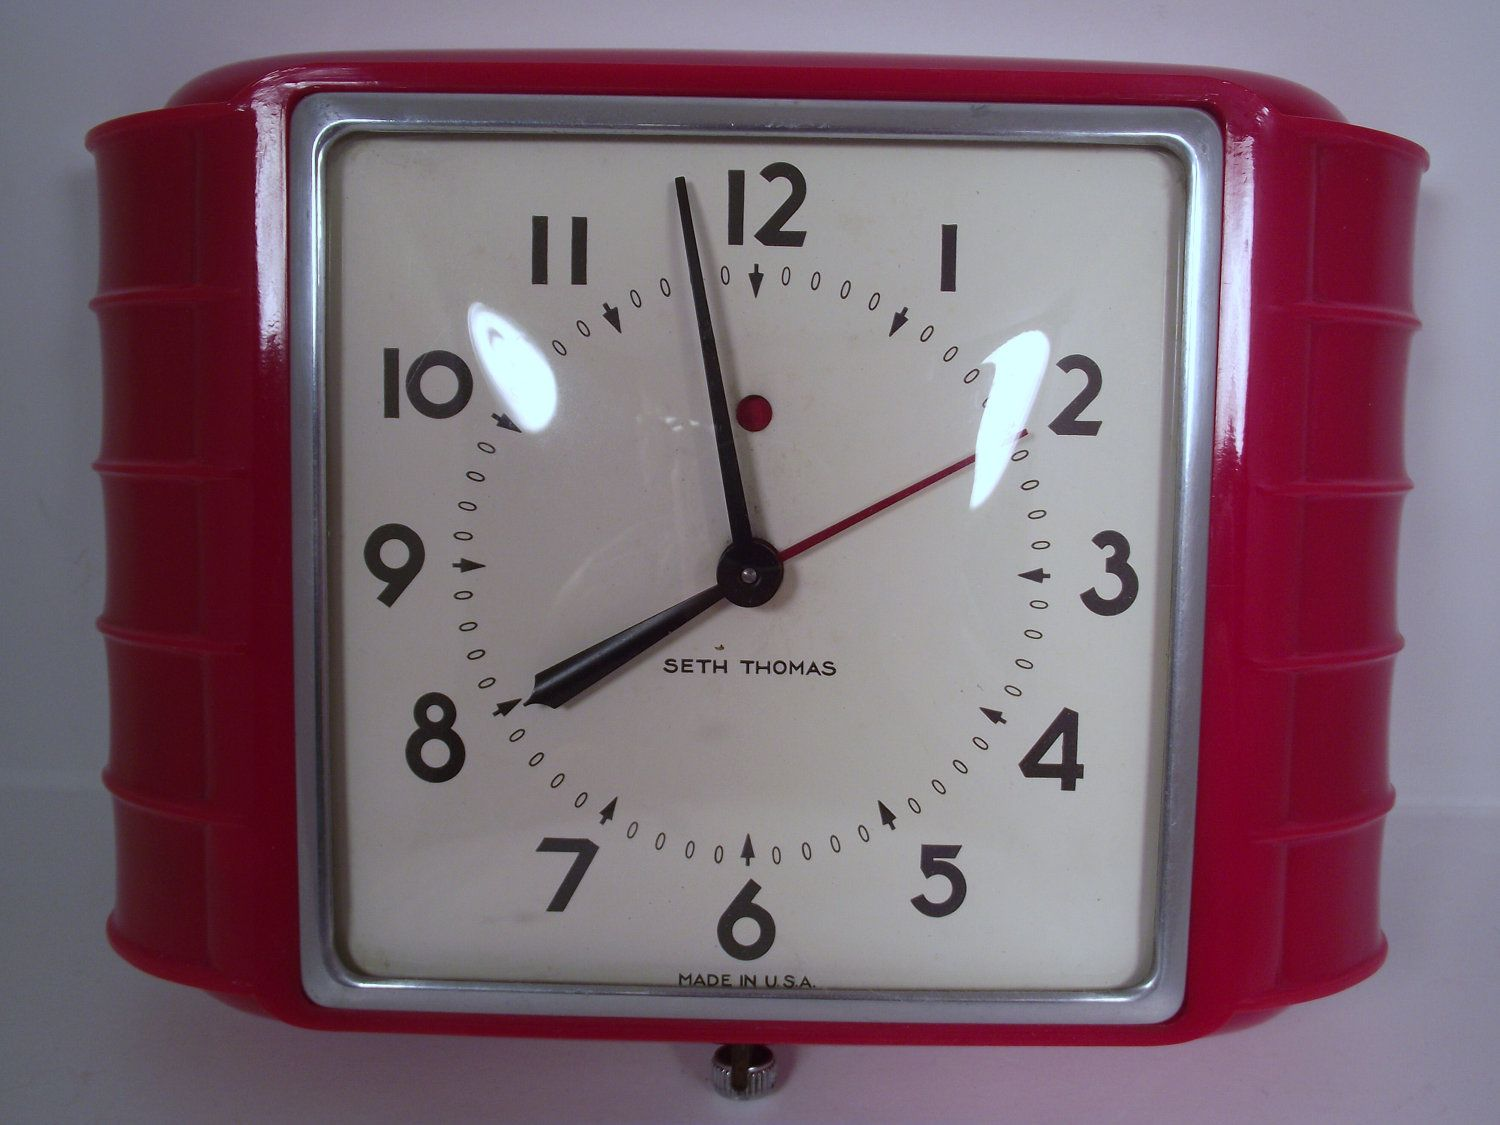 Vintage 1940s Art Deco Seth Thomas Kitchen Electric Wall Clock In RED  Plastic Model E854